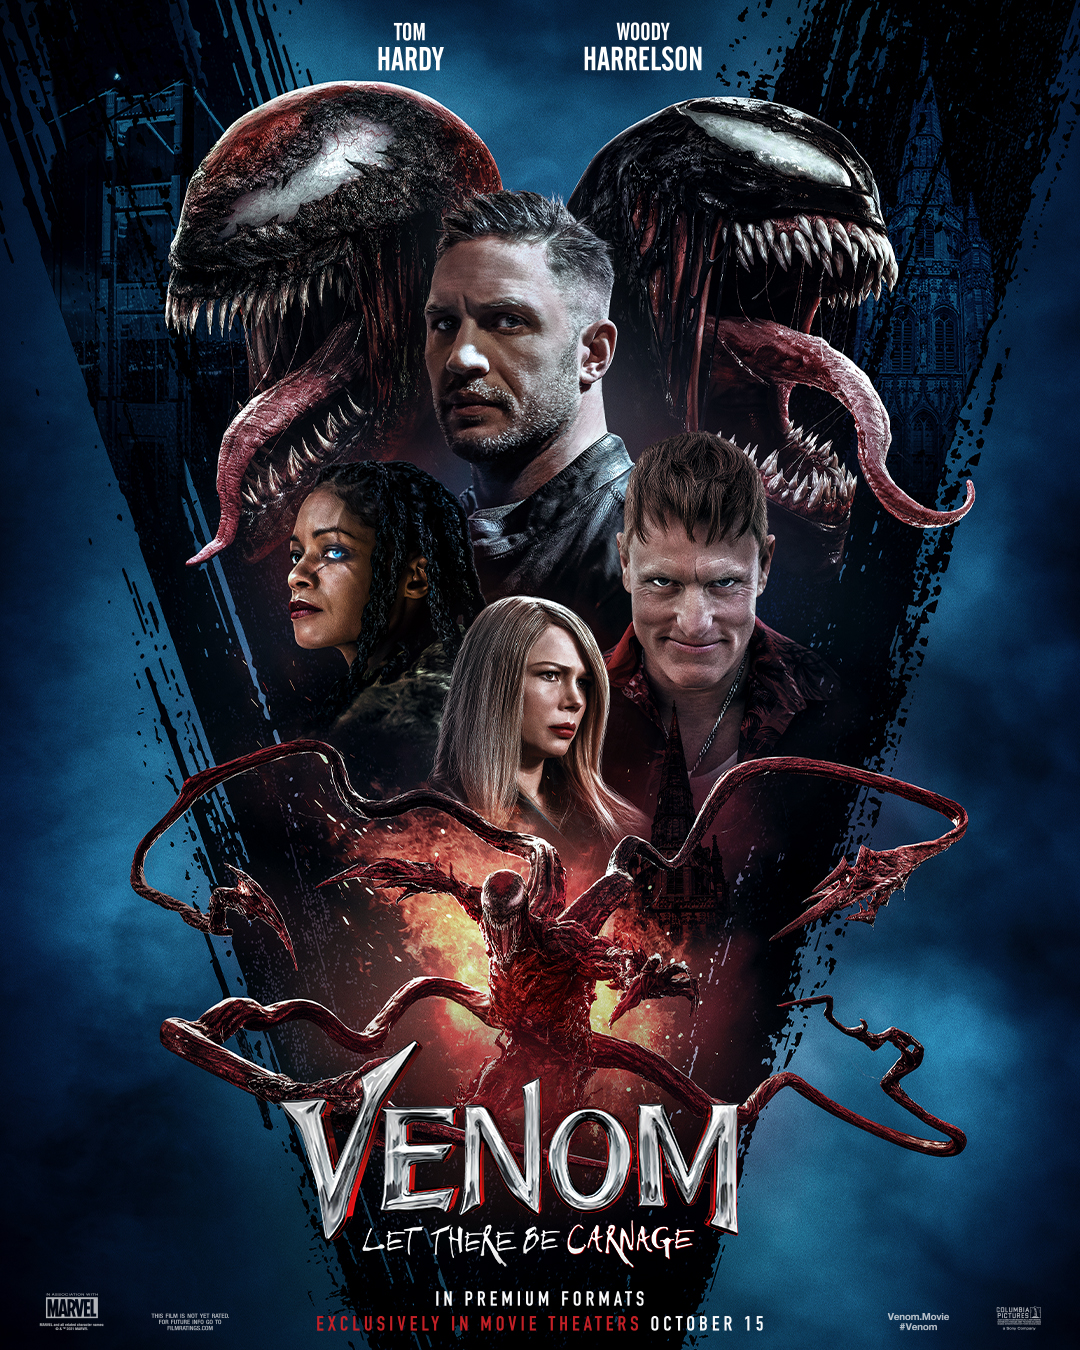 Movie poster image for VENOM: LET THERE BE CARNAGE